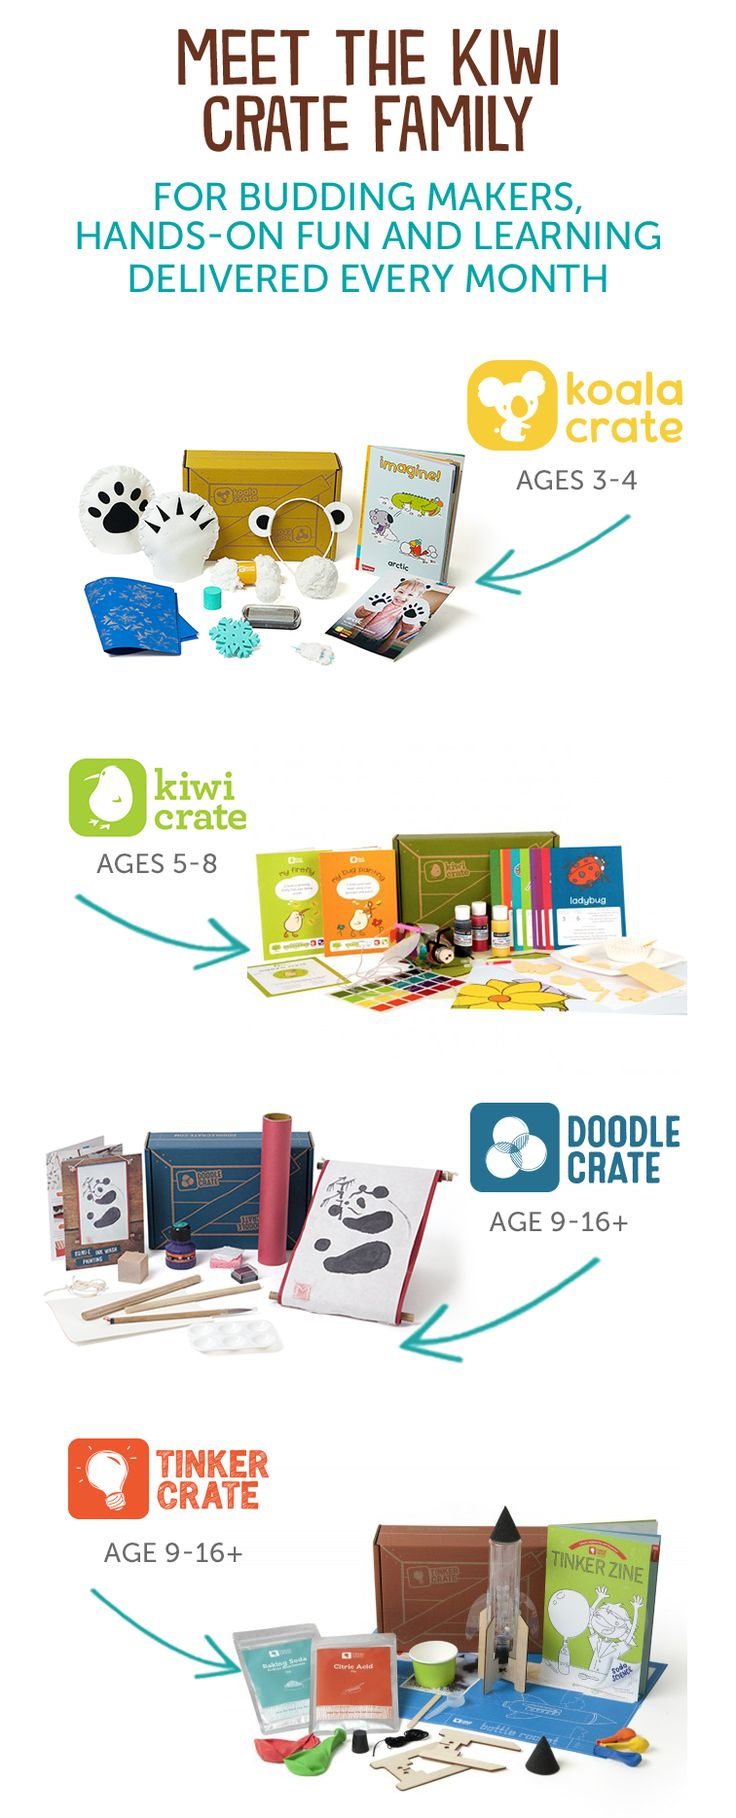 Kiwi Crate encourages learning, discovering and making at any age! Whether your child is three or thirteen, discover the gift of hands-on learning delivered straight to your door. Kiwi Crate comes in four age ranges – Koala Crate, Kiwi Crate, Doodle Crate and Tinker Crate and gives your child everything they need to create, explore and learn. Inspire your kids to see themselves as scientists, artists, creators and makers today.